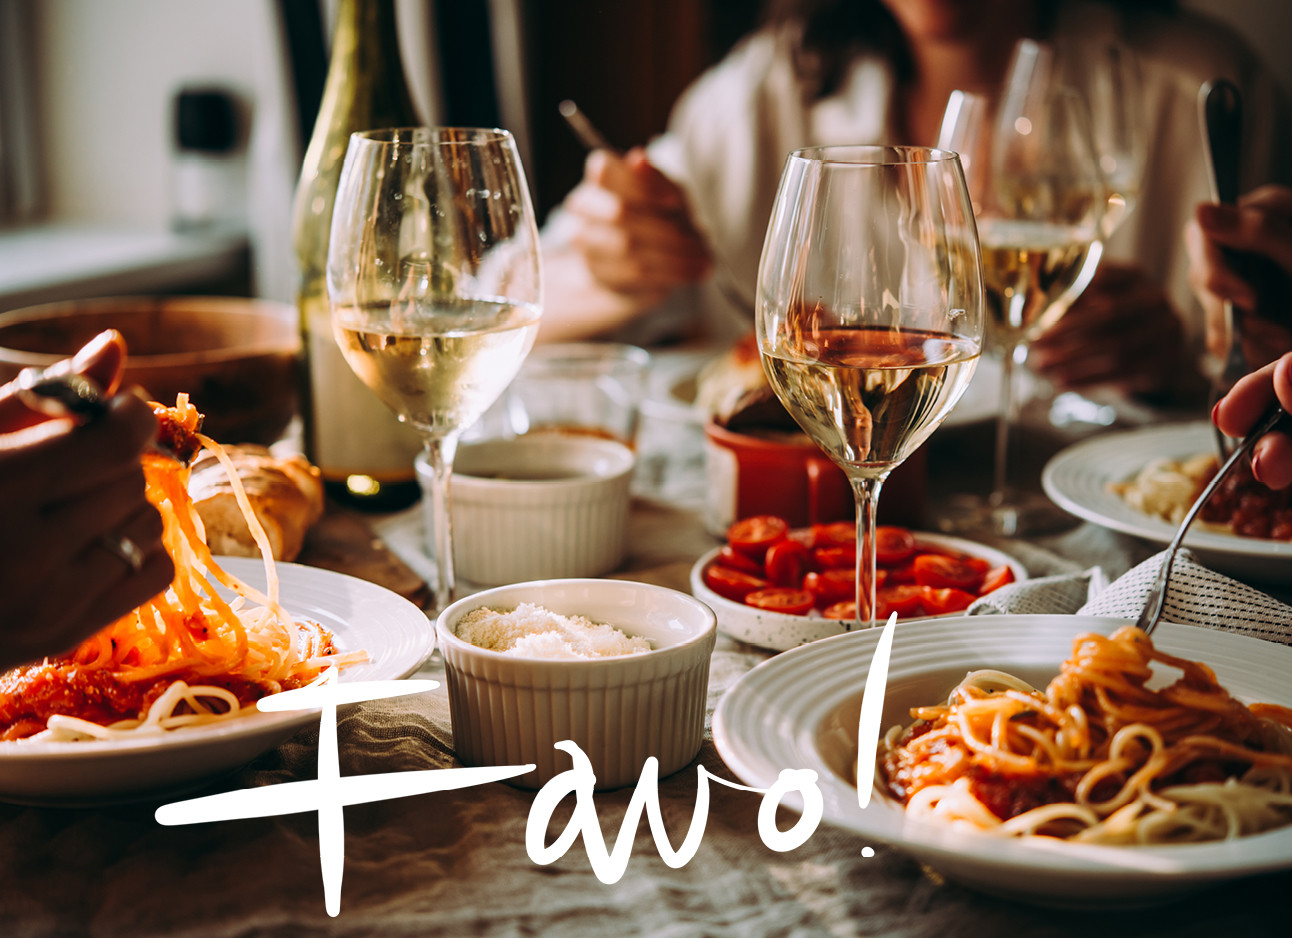 friends eating spaghetti together and drinking wine